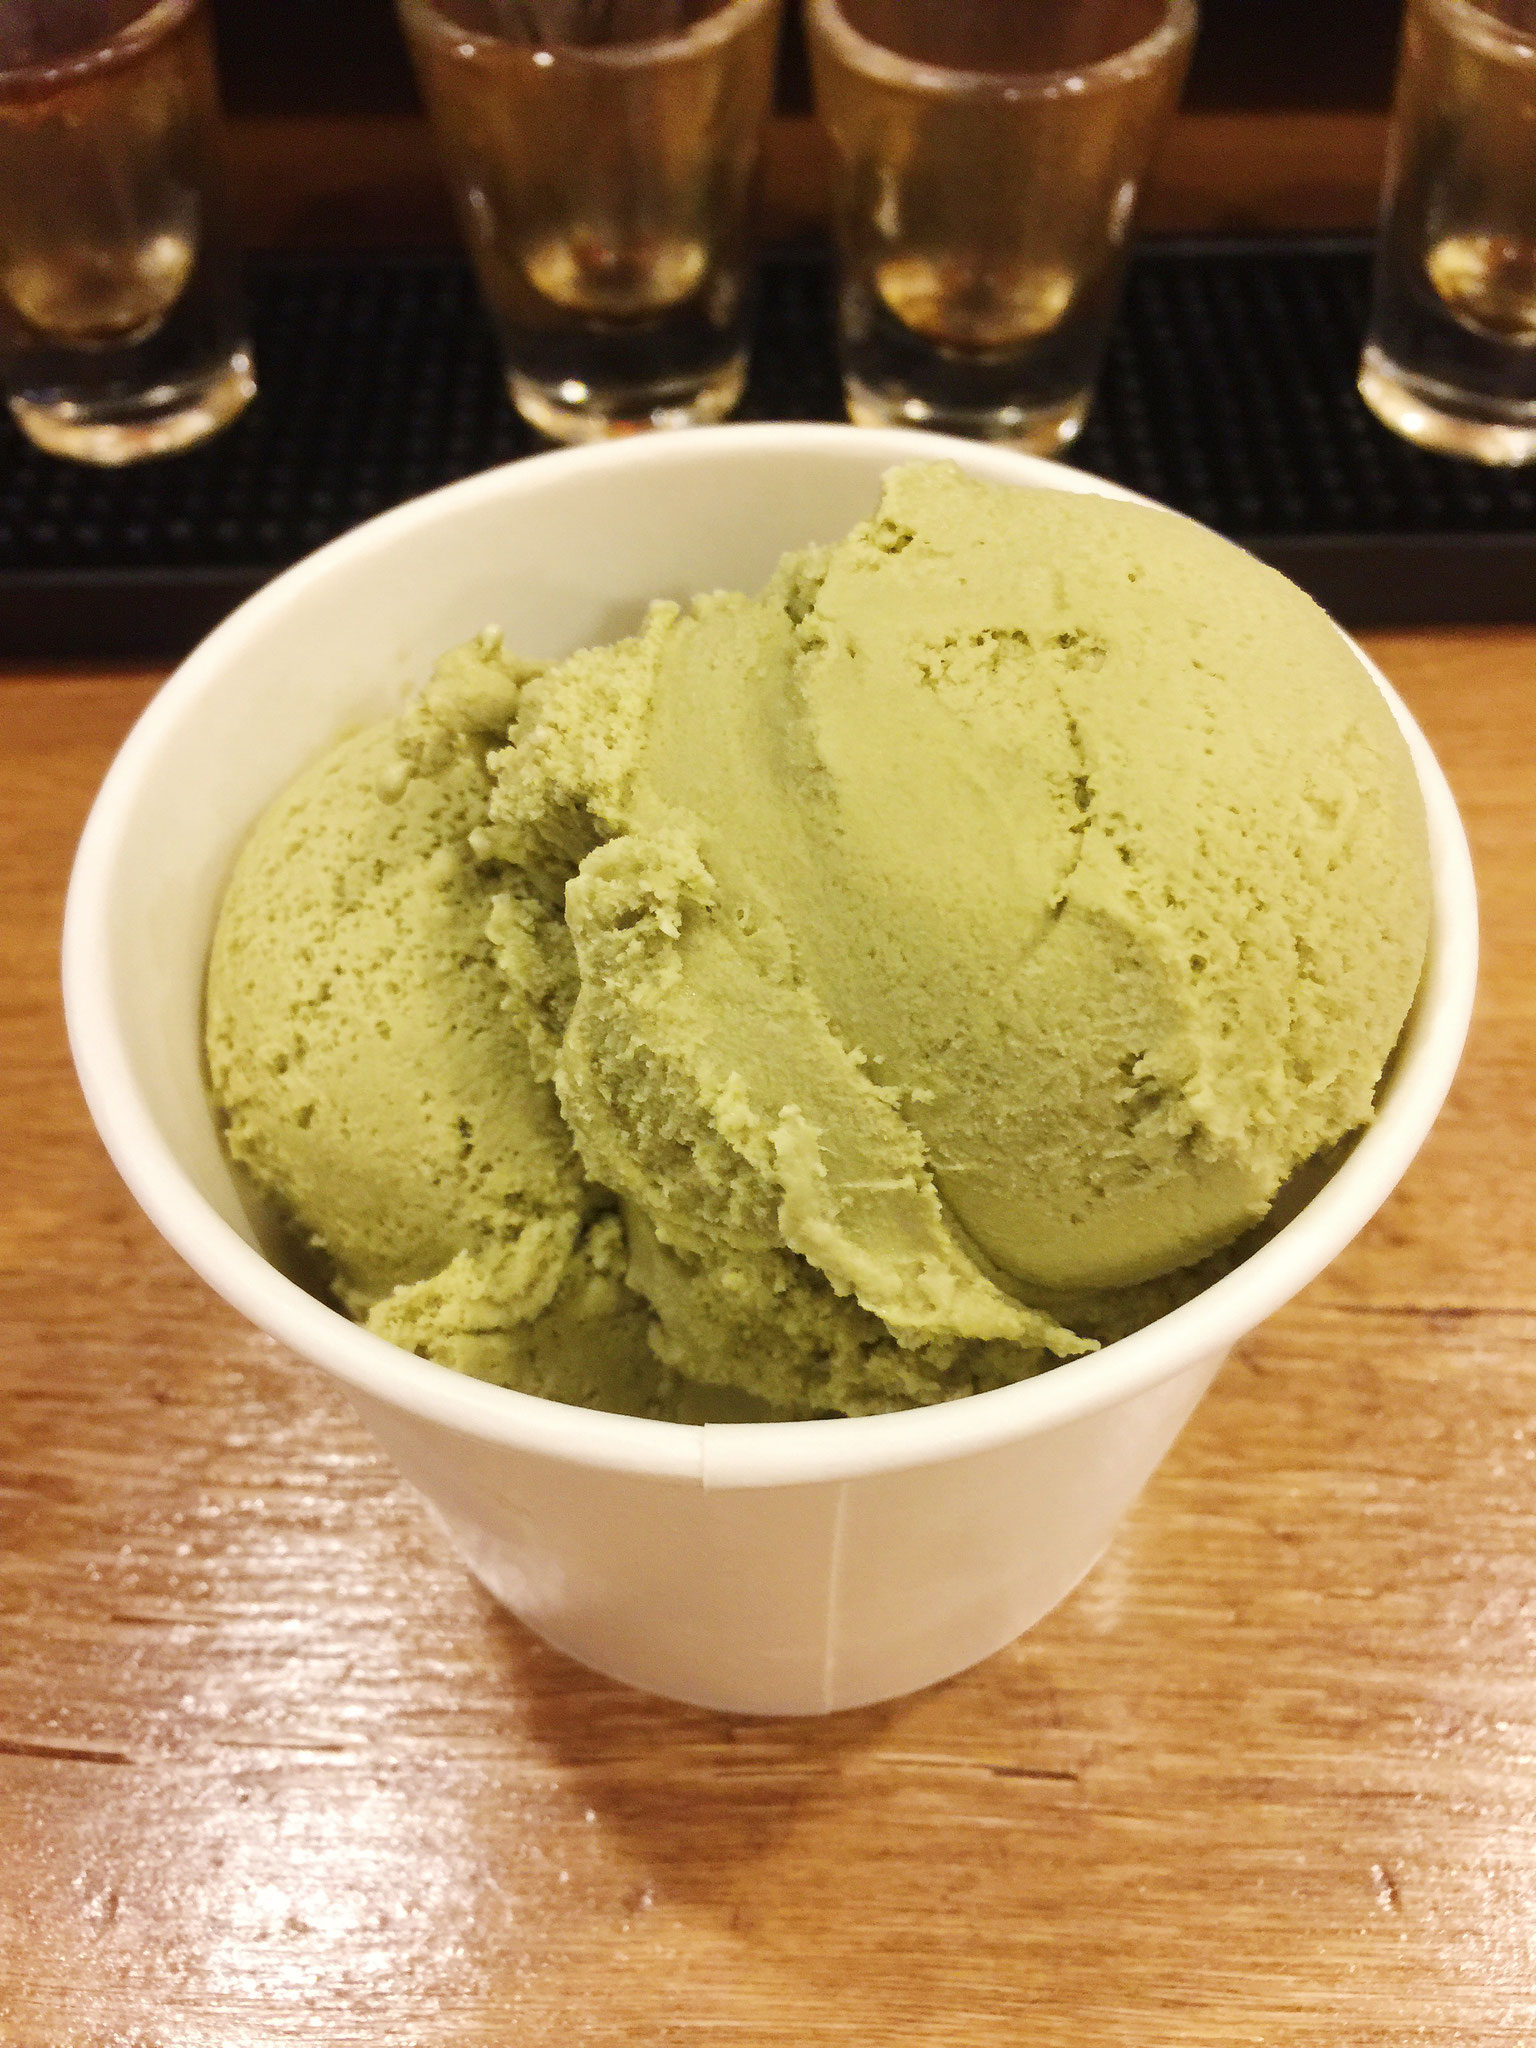 Green Tea Ice Cream - $2.95